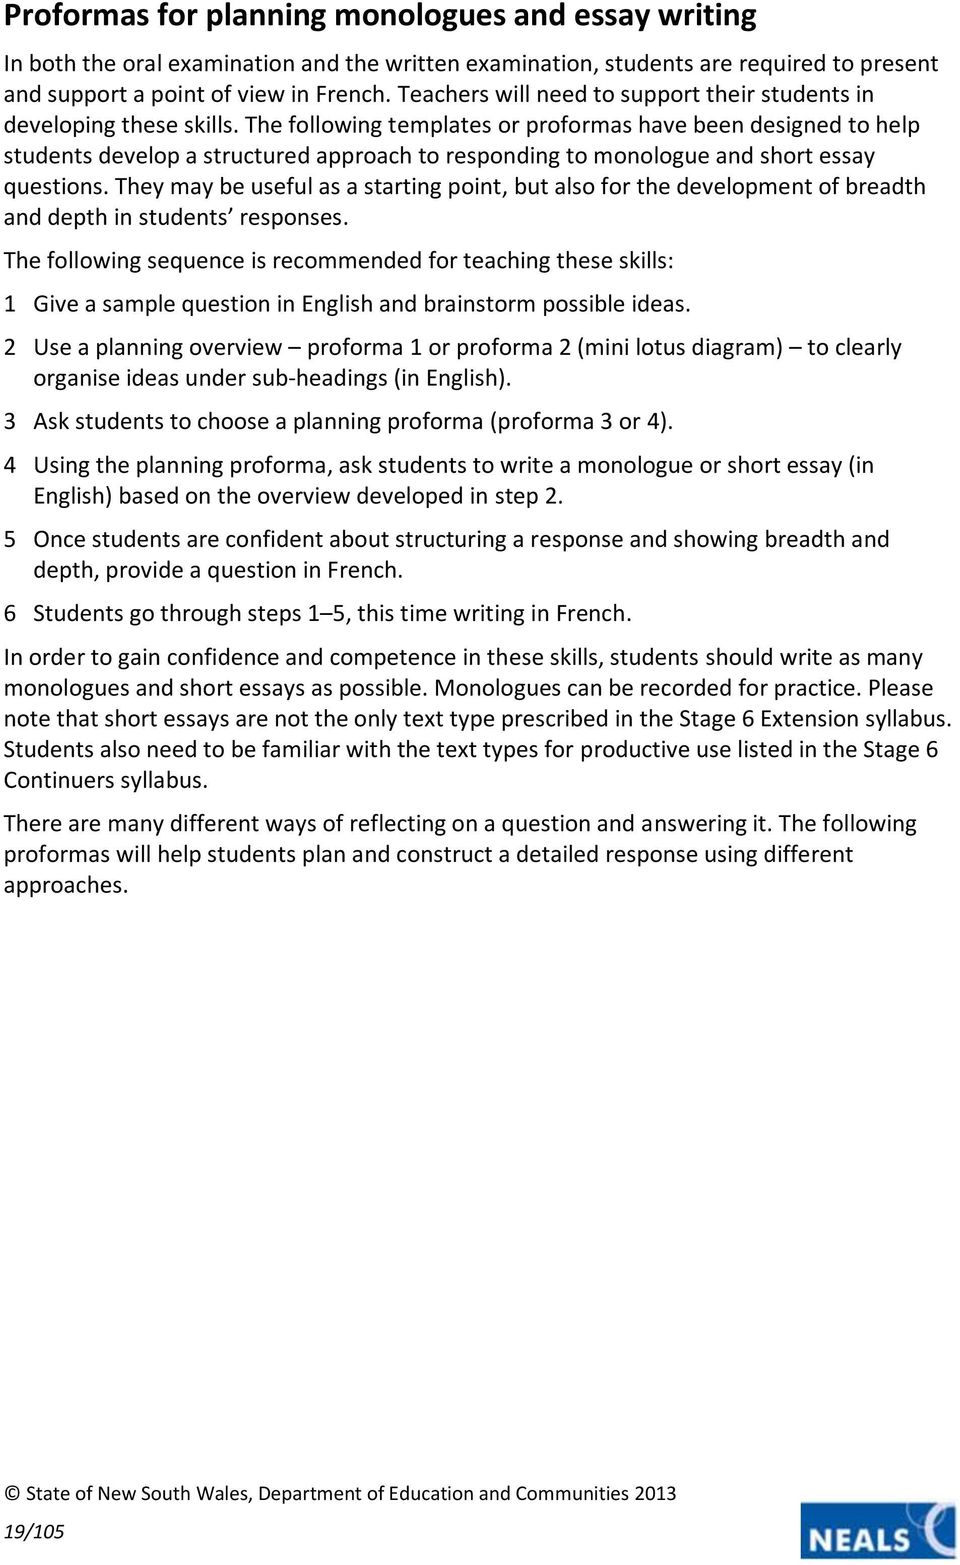 How To Write Expository Essays Useful French As Essay Phrases Useful French As Essay Phrases  Biopsychosocial Essay also Advocacy Essay Useful French As Essay Phrases Essay Academic Service  Reflection Essays Sample